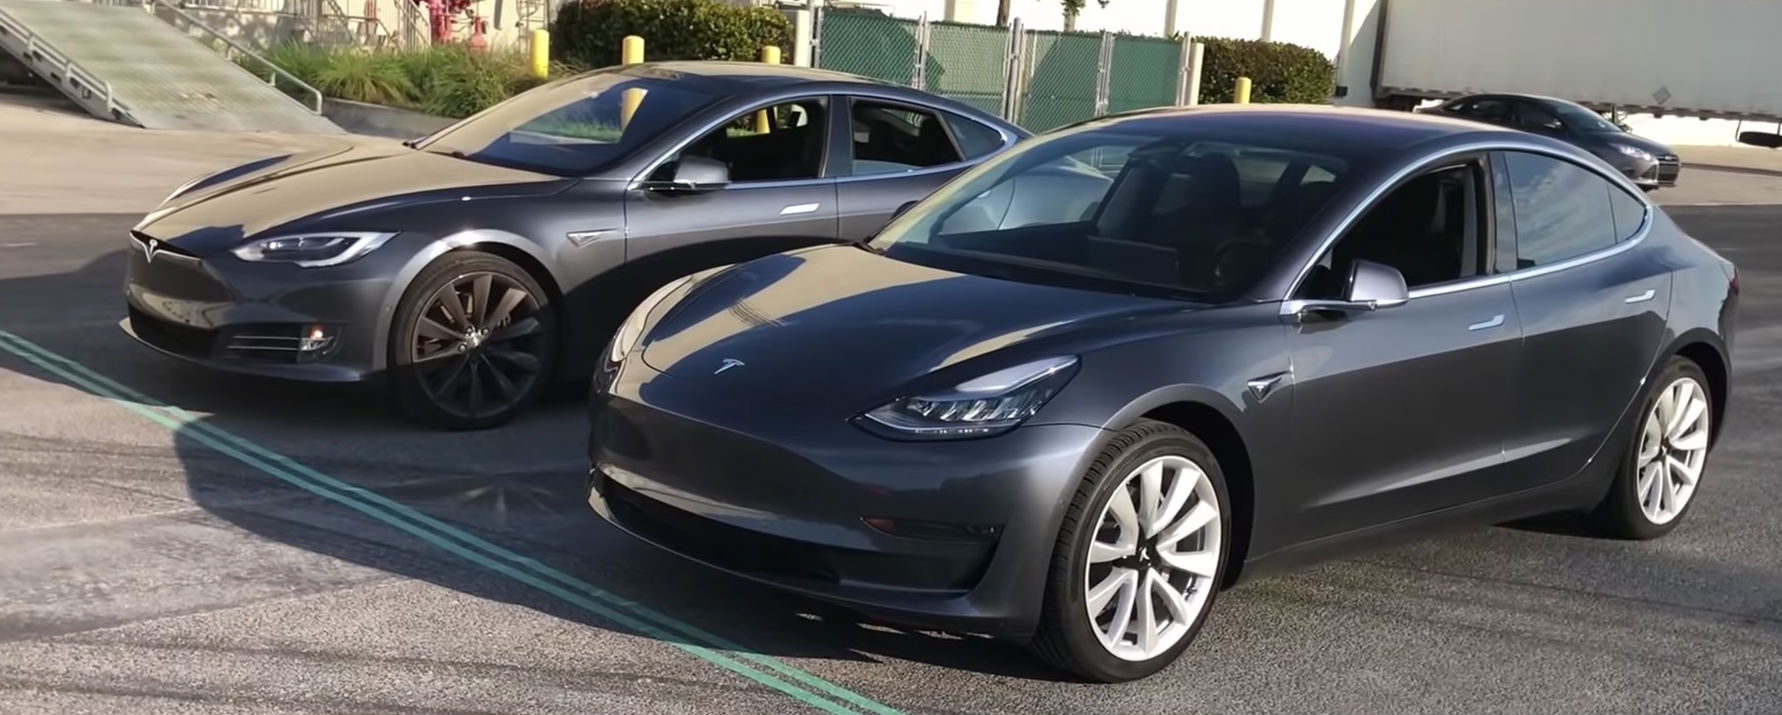 tesla-model-s-vs-model-3-summon-race